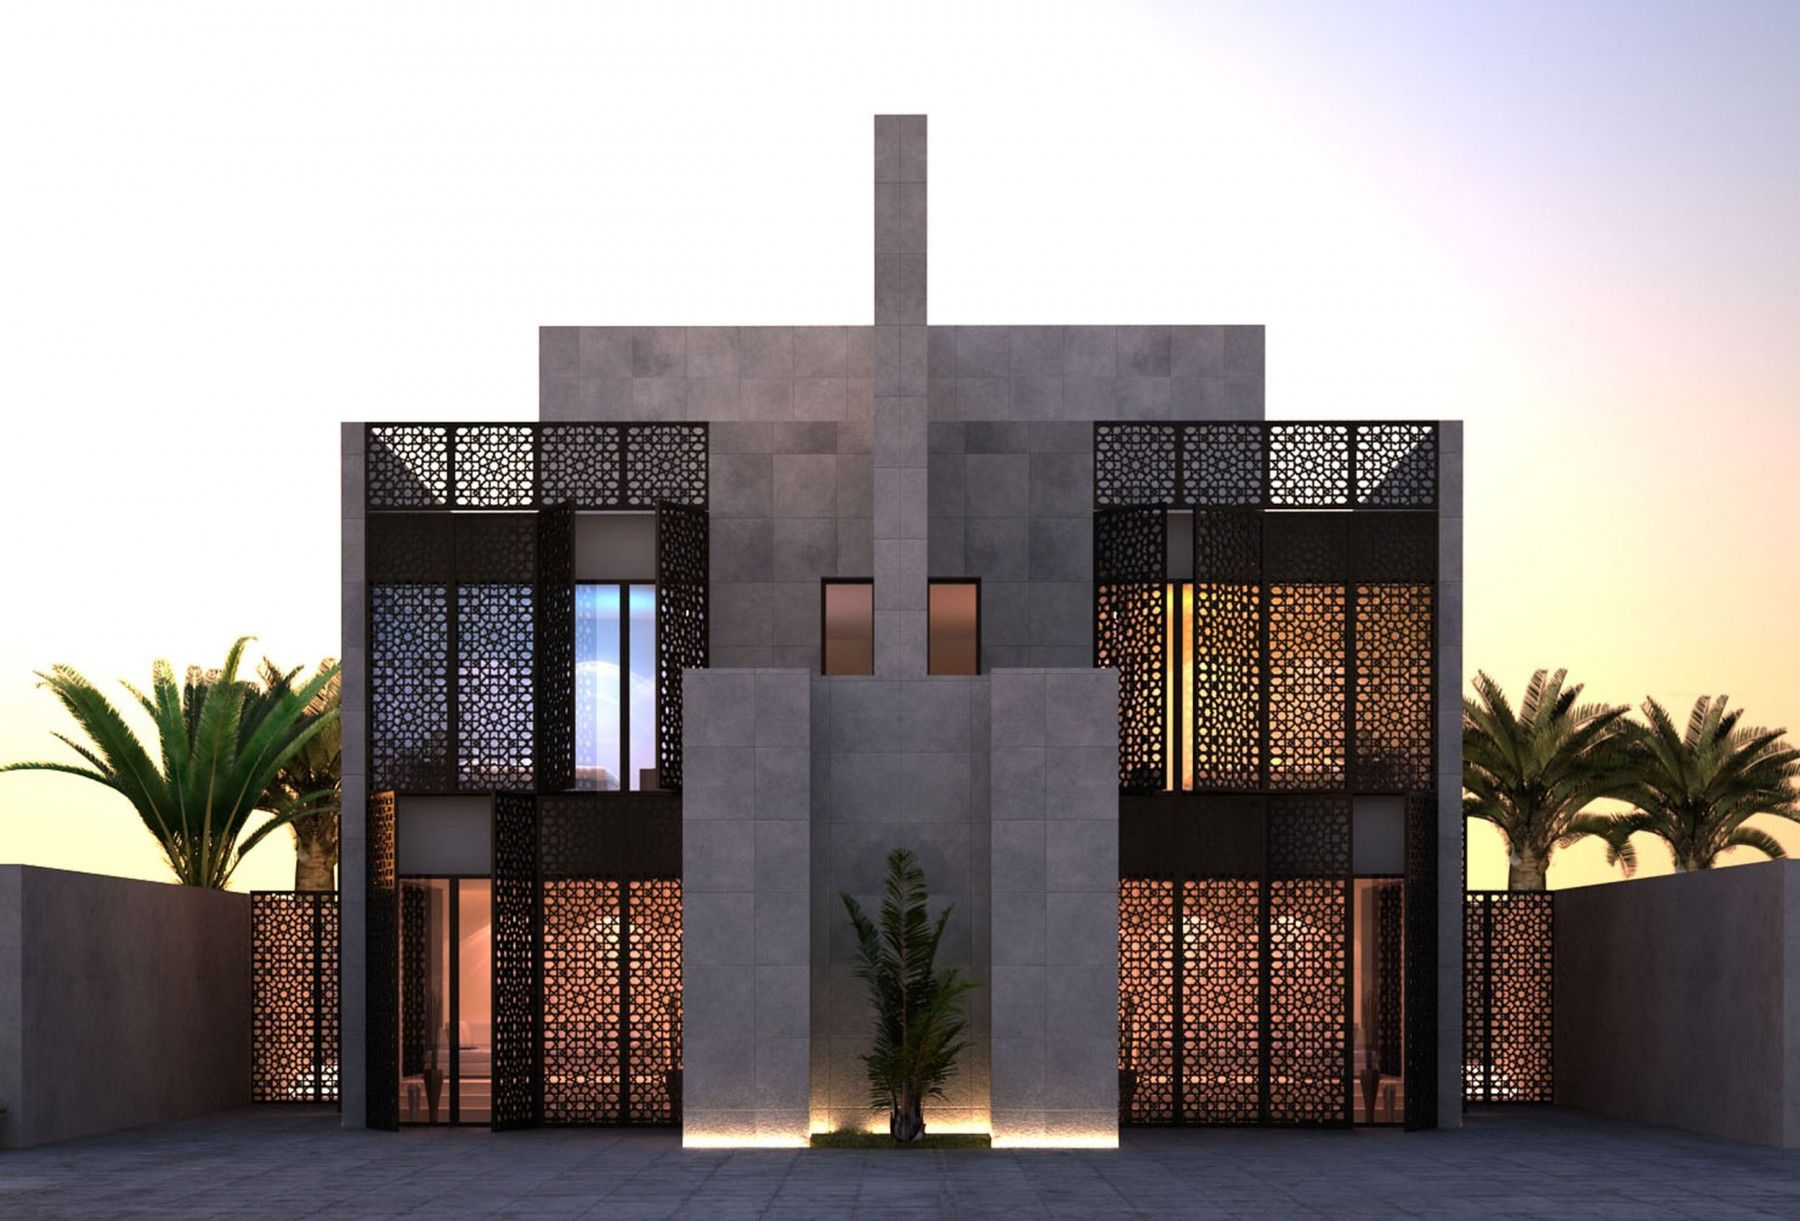 Top International Architecture Design Jeddah Housing Complex Saudi Arabia Matteo Nunziati